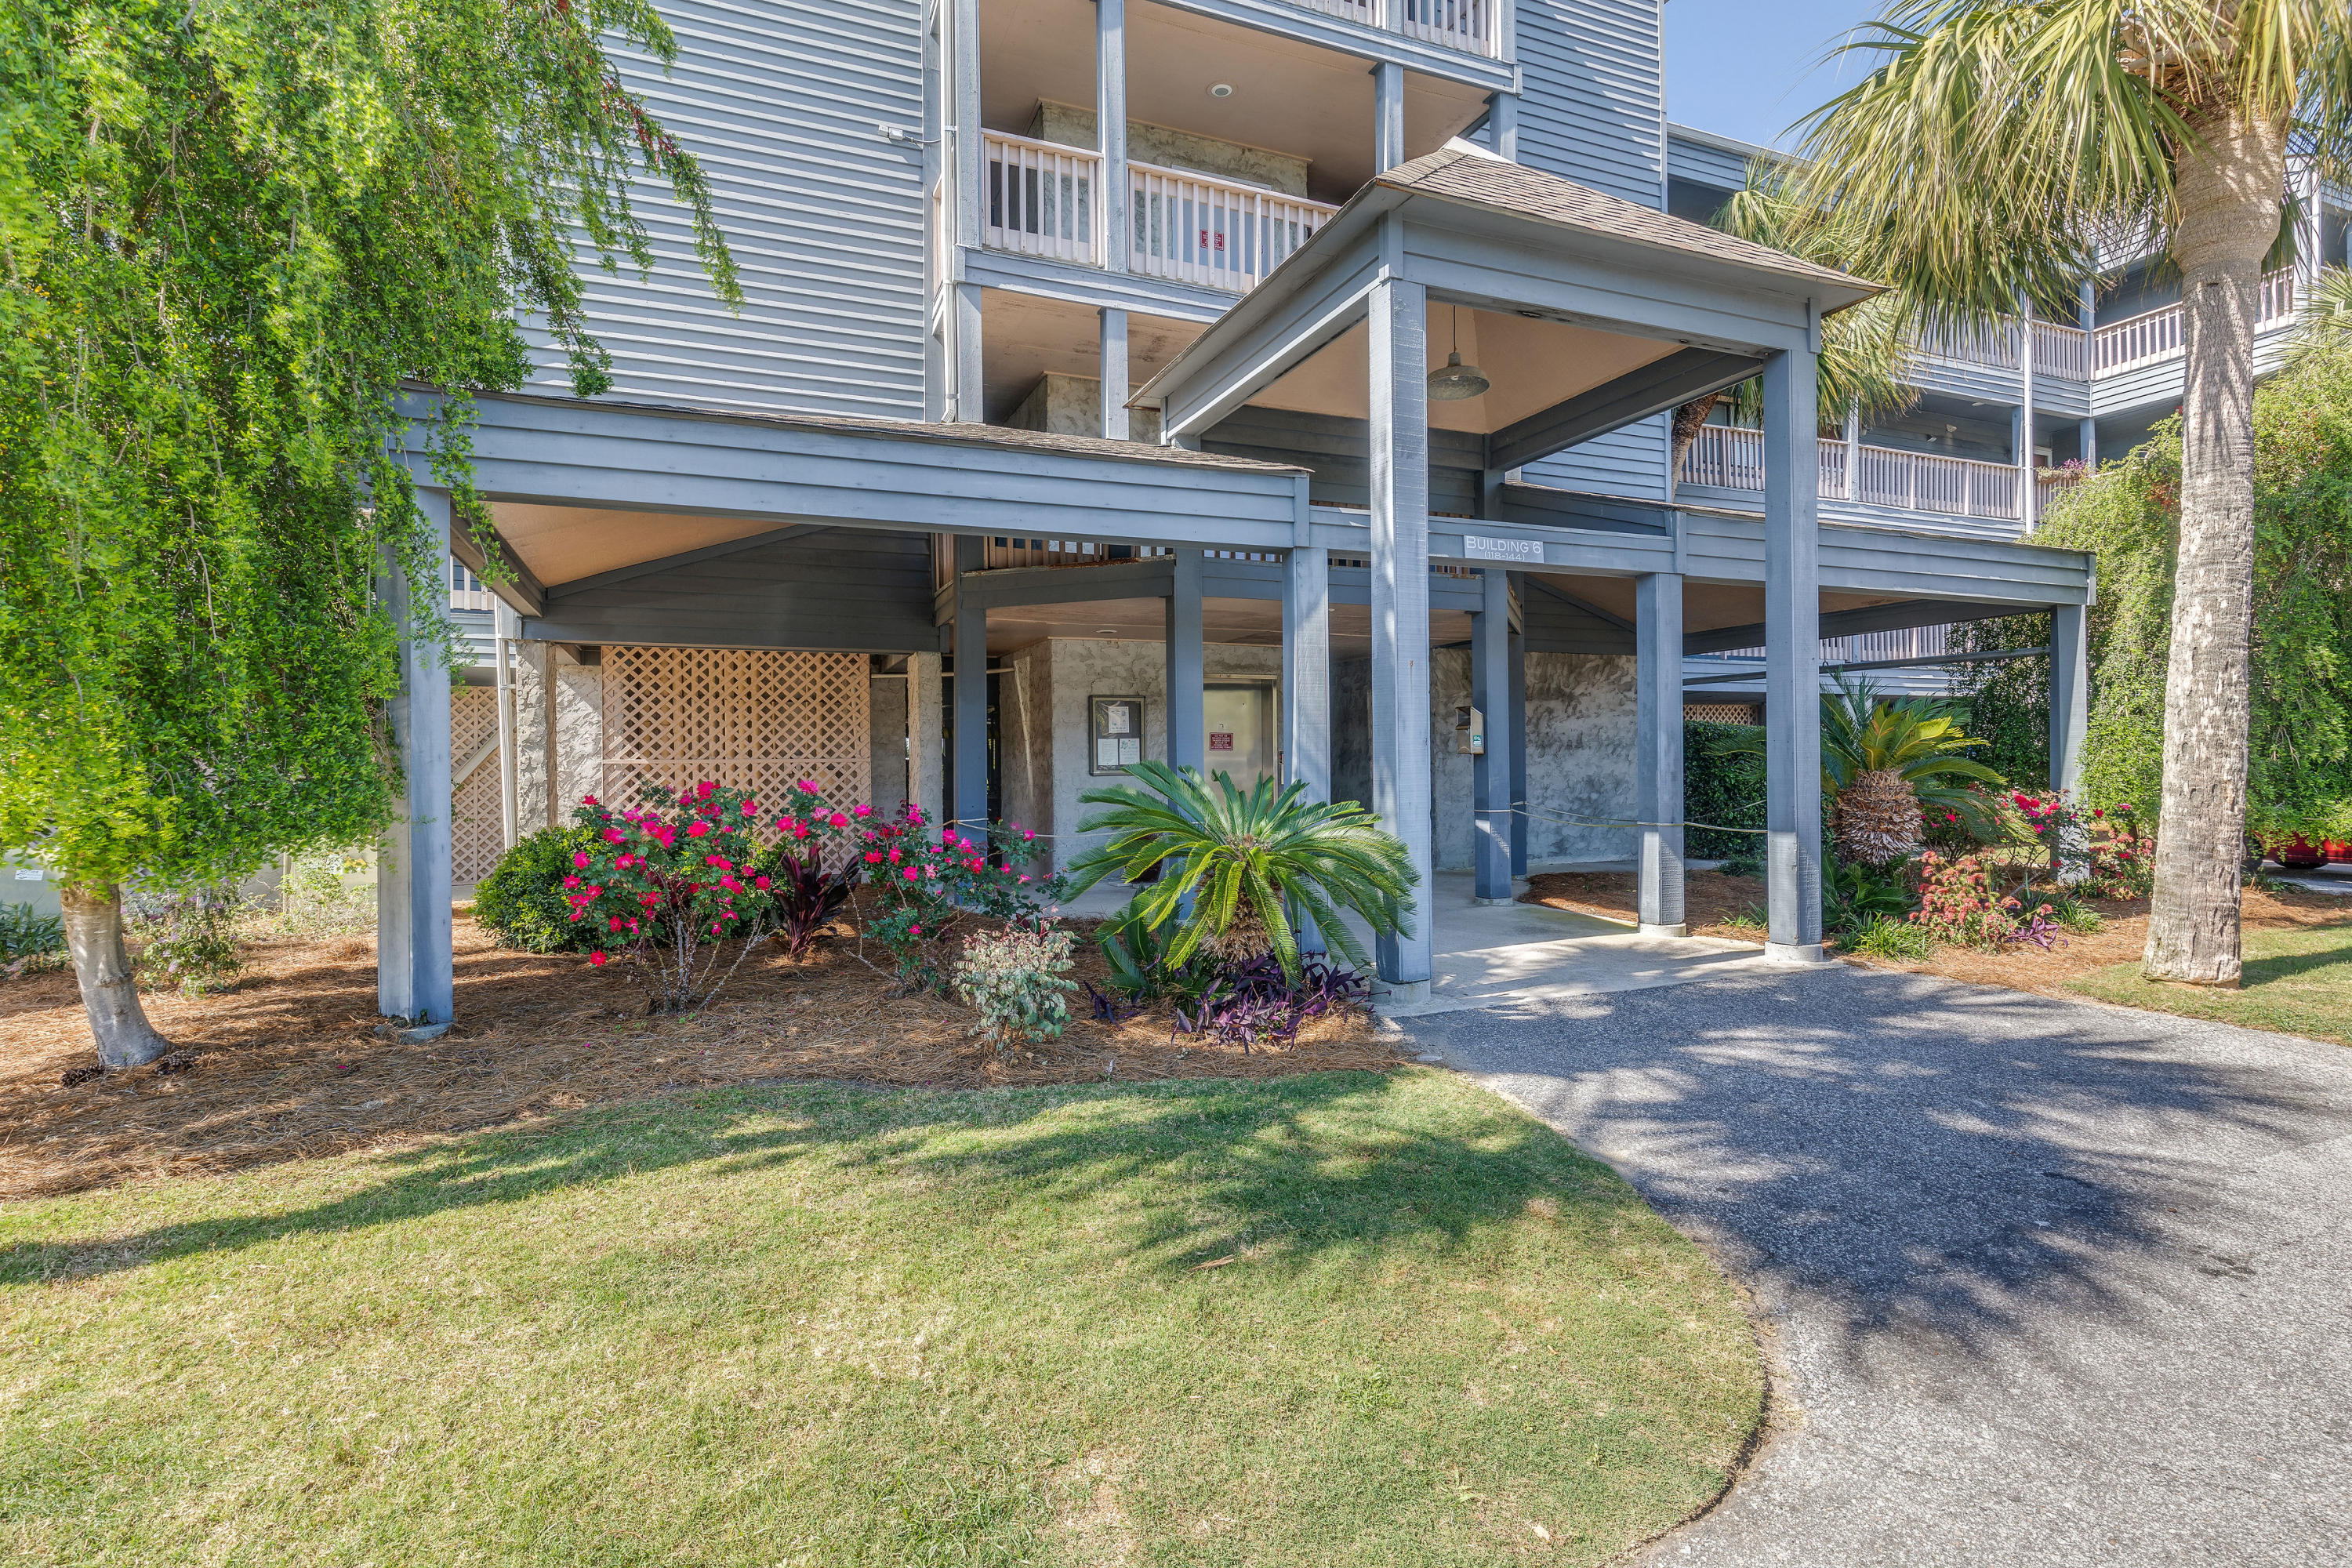 Mariners Cay Homes For Sale - 129 Marsh View Villas, Folly Beach, SC - 28